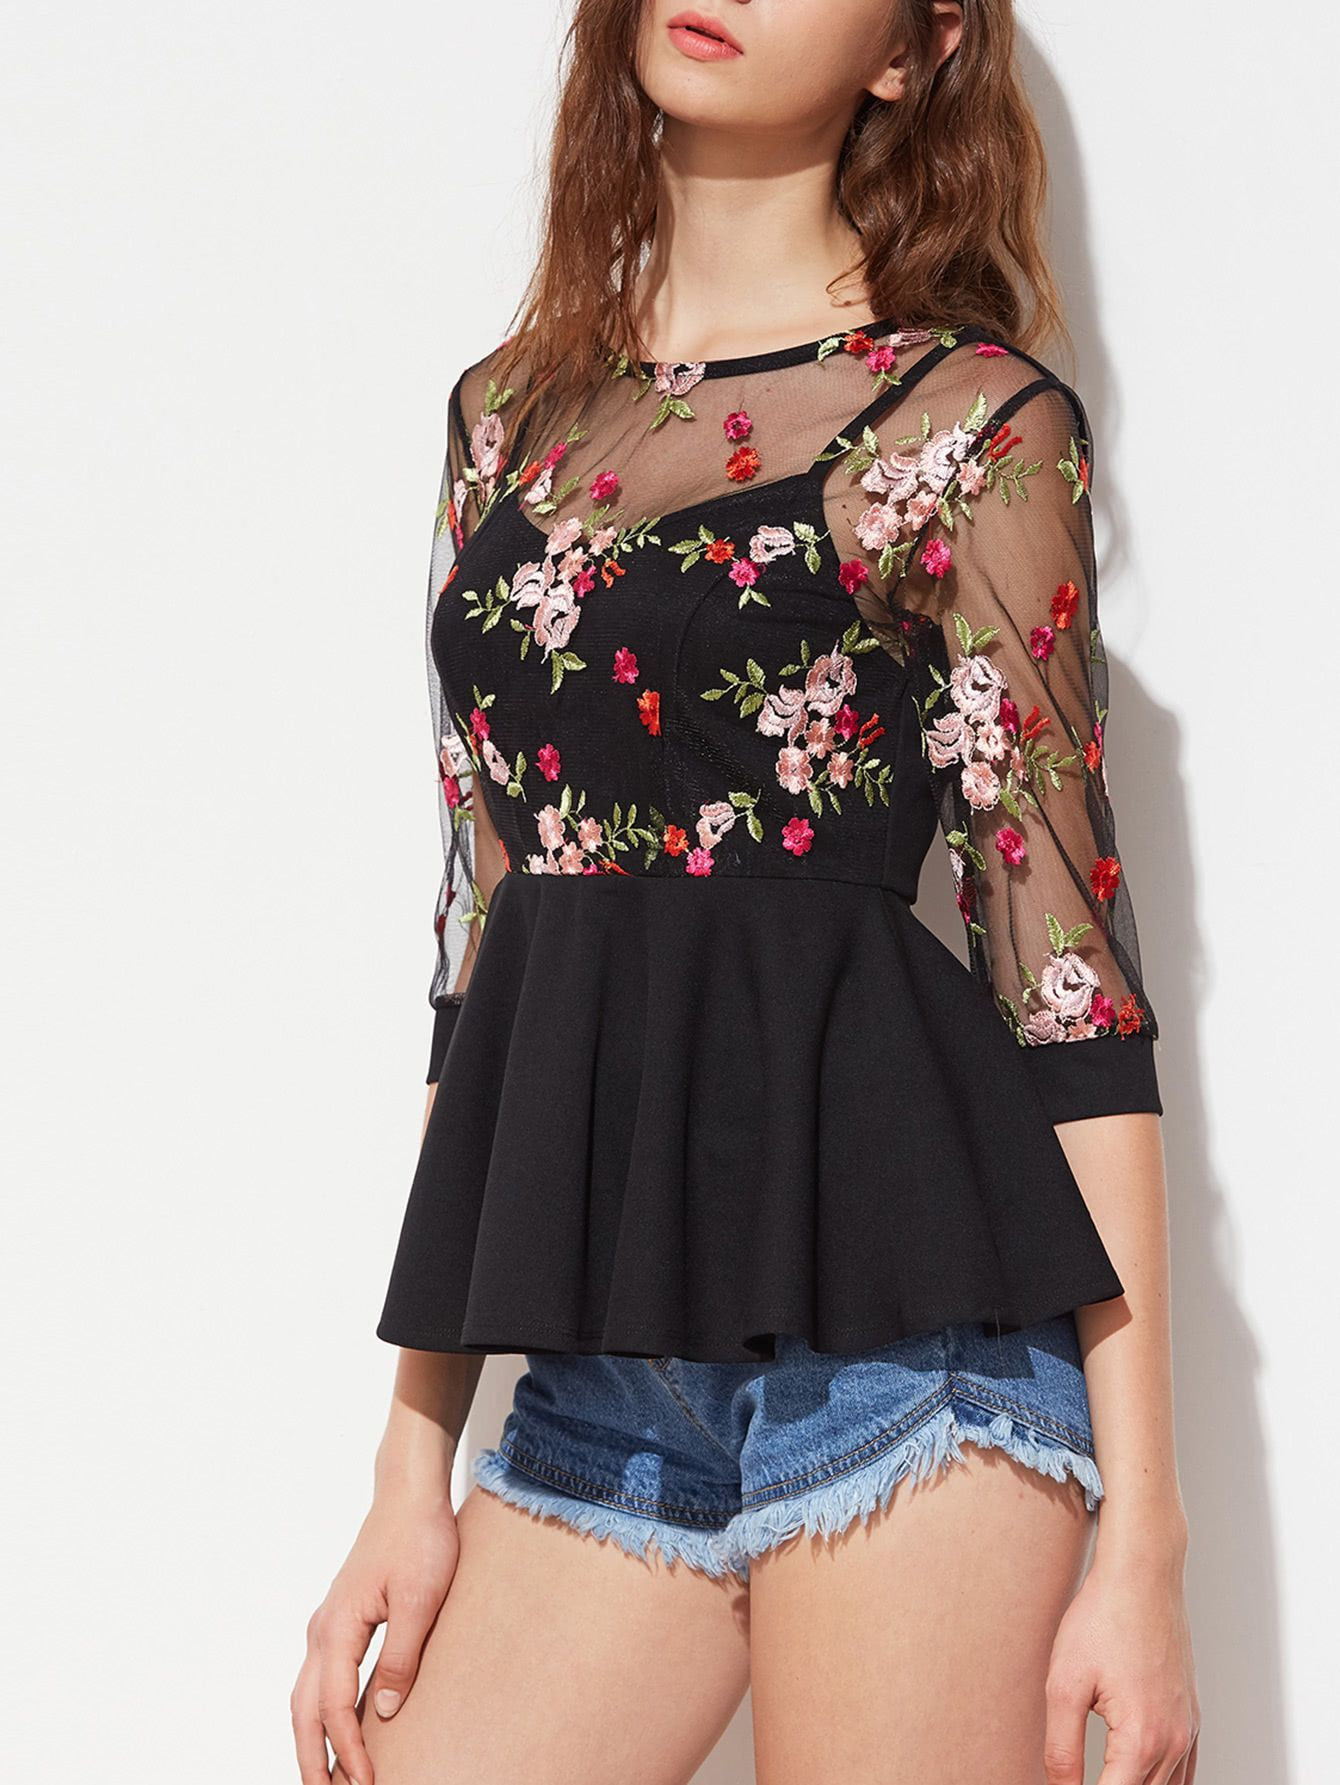 e83745e403d21 Shop Flower Embroidered Mesh Overlay 2 In 1 Peplum Top online. SheIn offers  Flower Embroidered Mesh Overlay 2 In 1 Peplum Top   more to fit your  fashionable ...